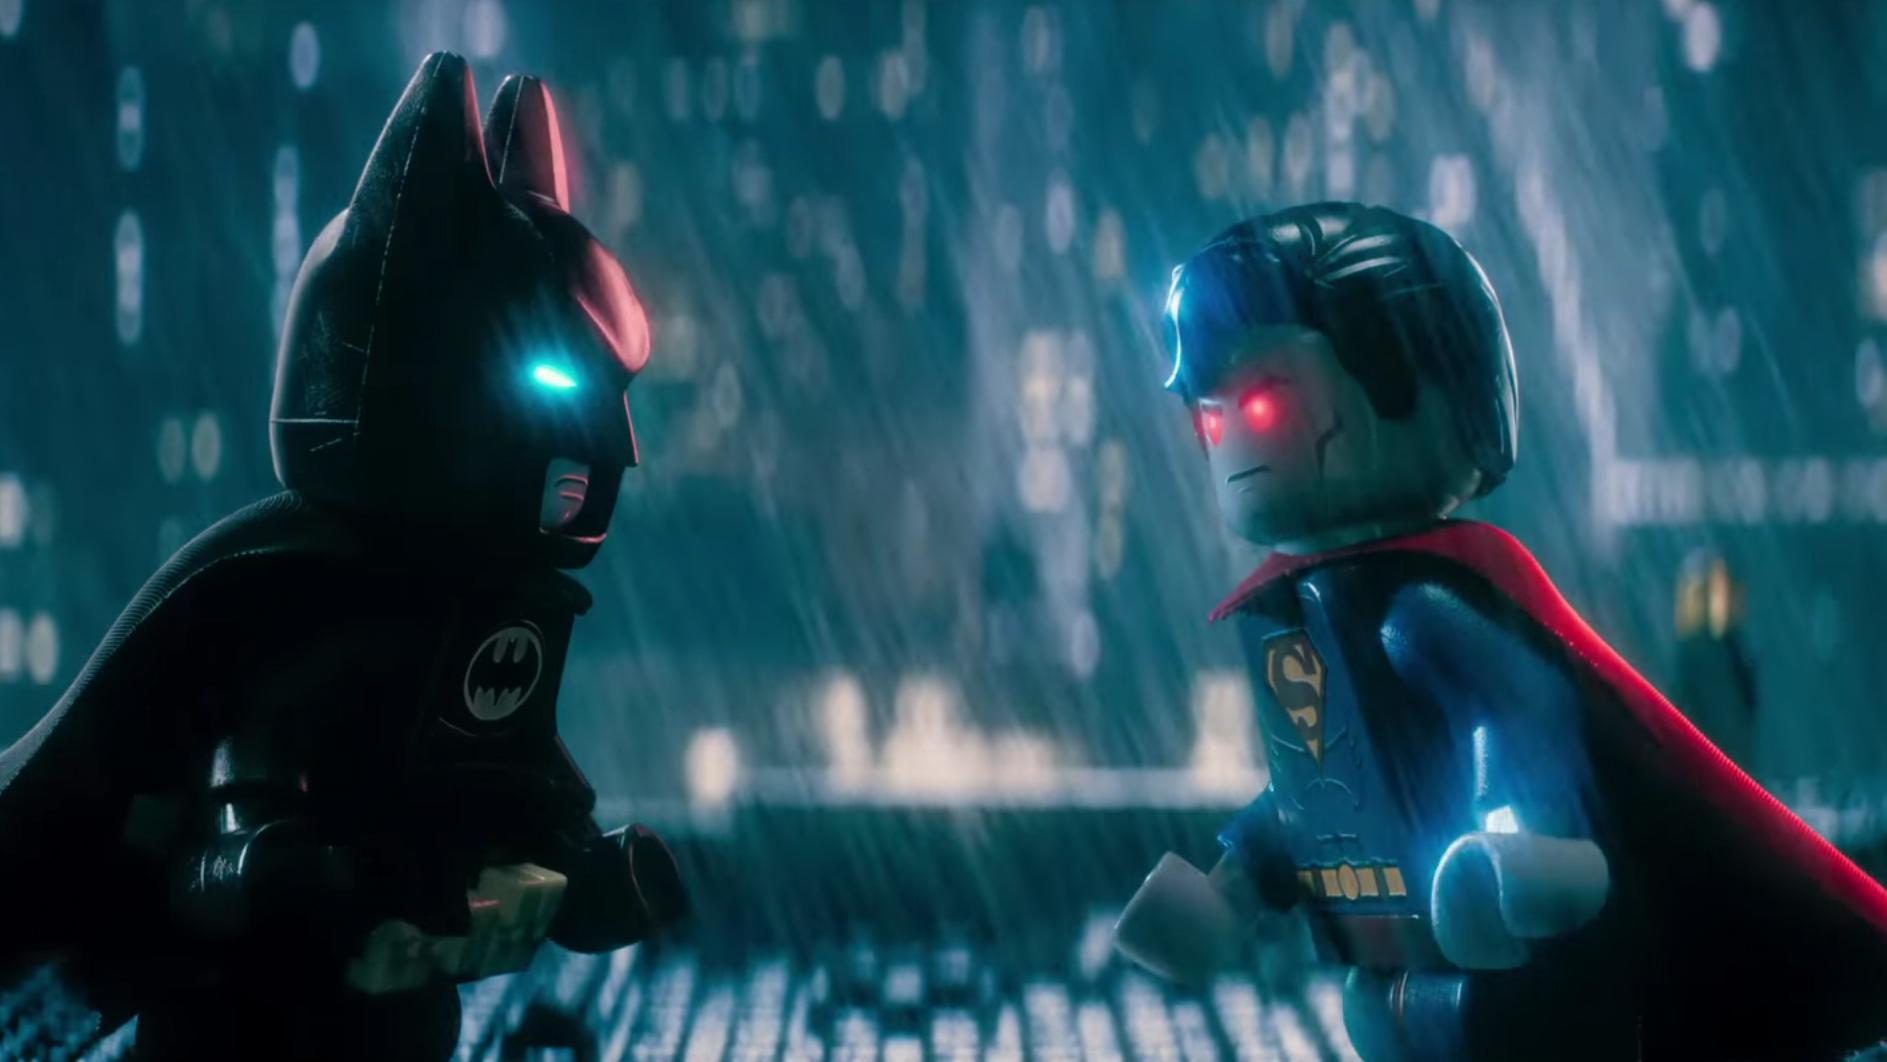 The Lego Batman Movie Trailer New Look Takes Hilarious Aim At Batman V Superman The Independent The Independent